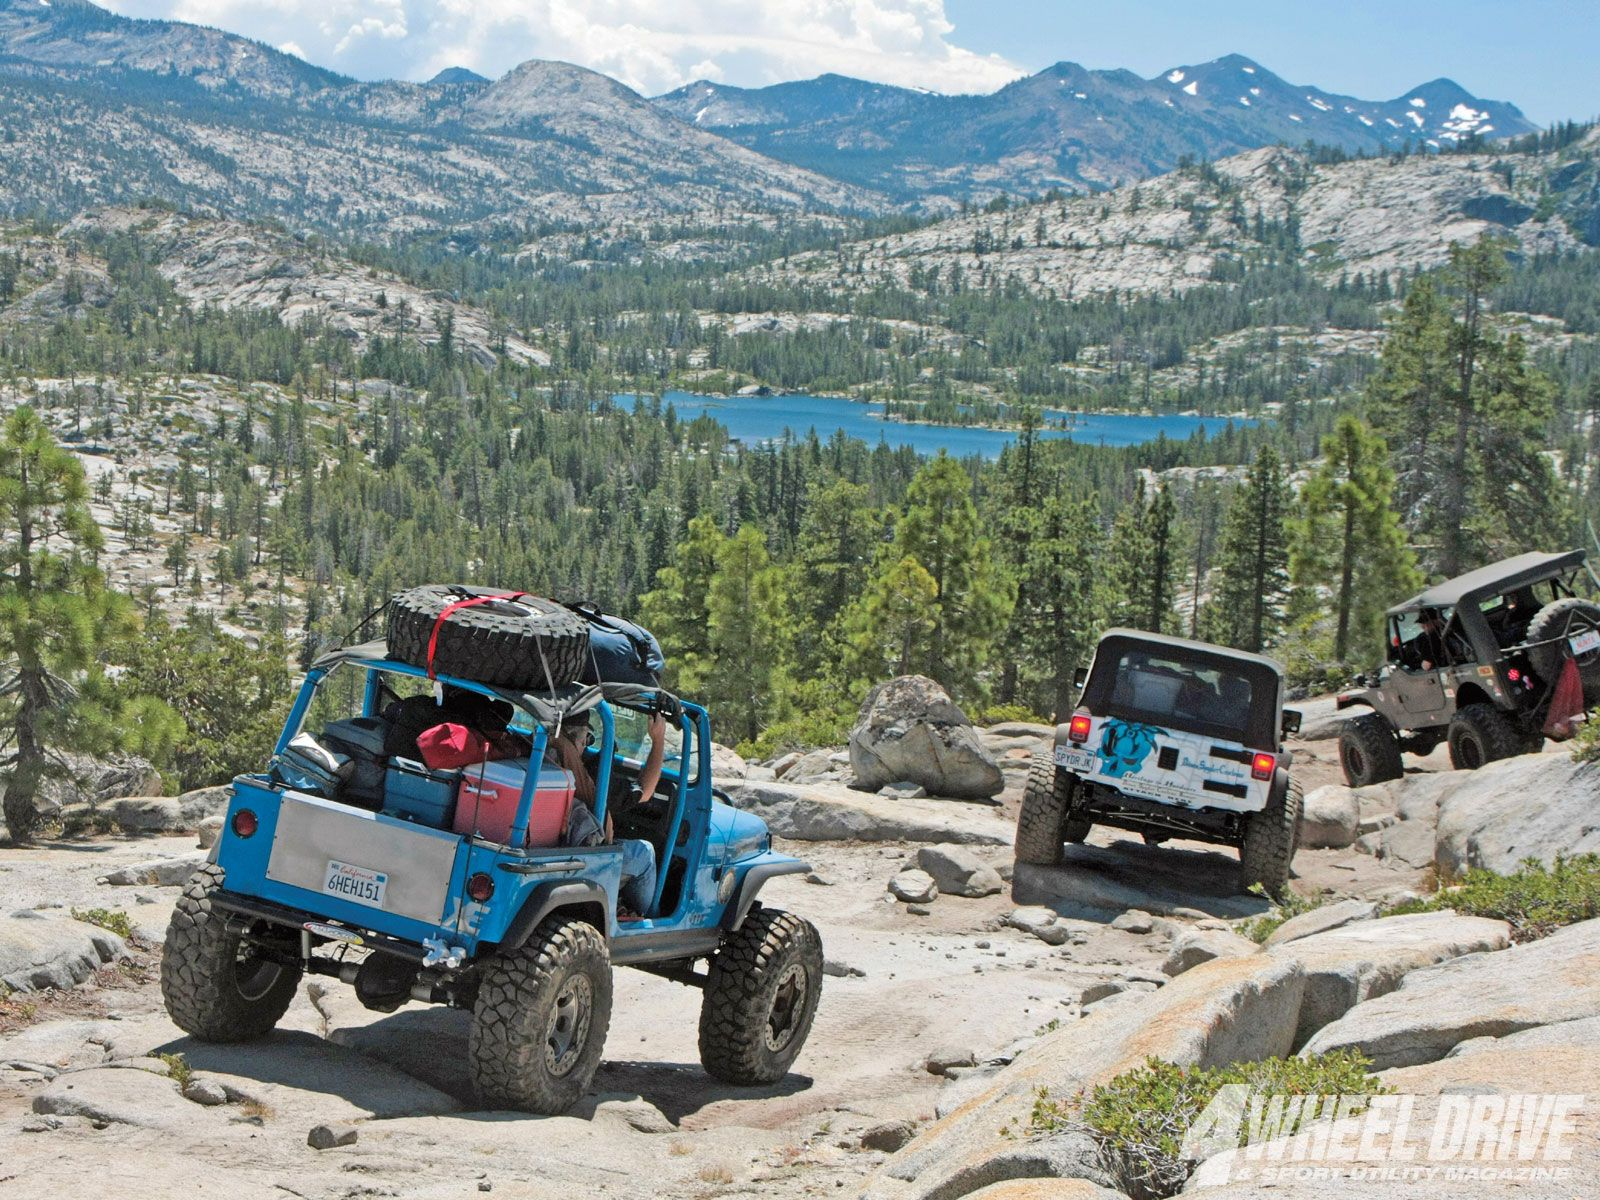 Rubicon Trail California I Want To Drive The Rubicon Trail In A Jeep As If There Were Any Other Way Jeep